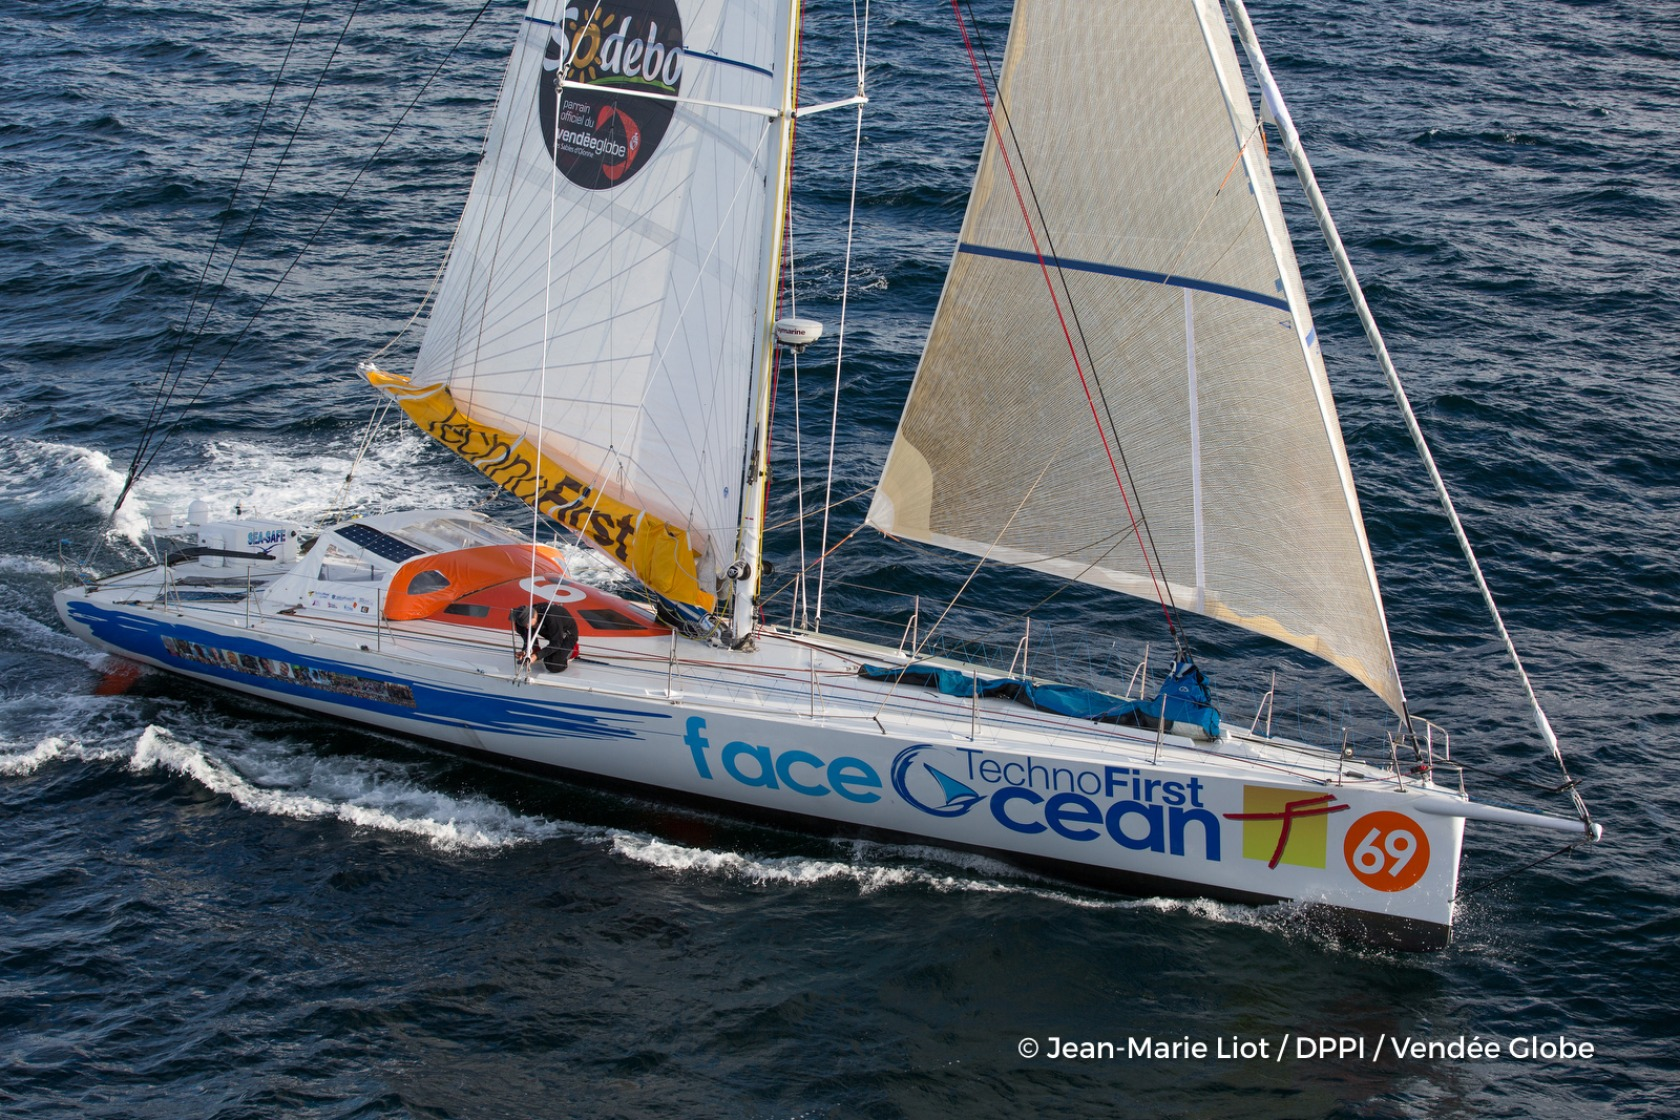 Technofirst Face Ocean, skipper Sebastien Destremau (FRA) at start of the Vendee Globe, in Les Sables d'Olonne, France, on November 6th, 2016 - Photo Jean-Marie Liot / DPPI / Vendee GlobeTechnofirst Face Ocean, skipper Sebastien Destremau (FRA) au dépar